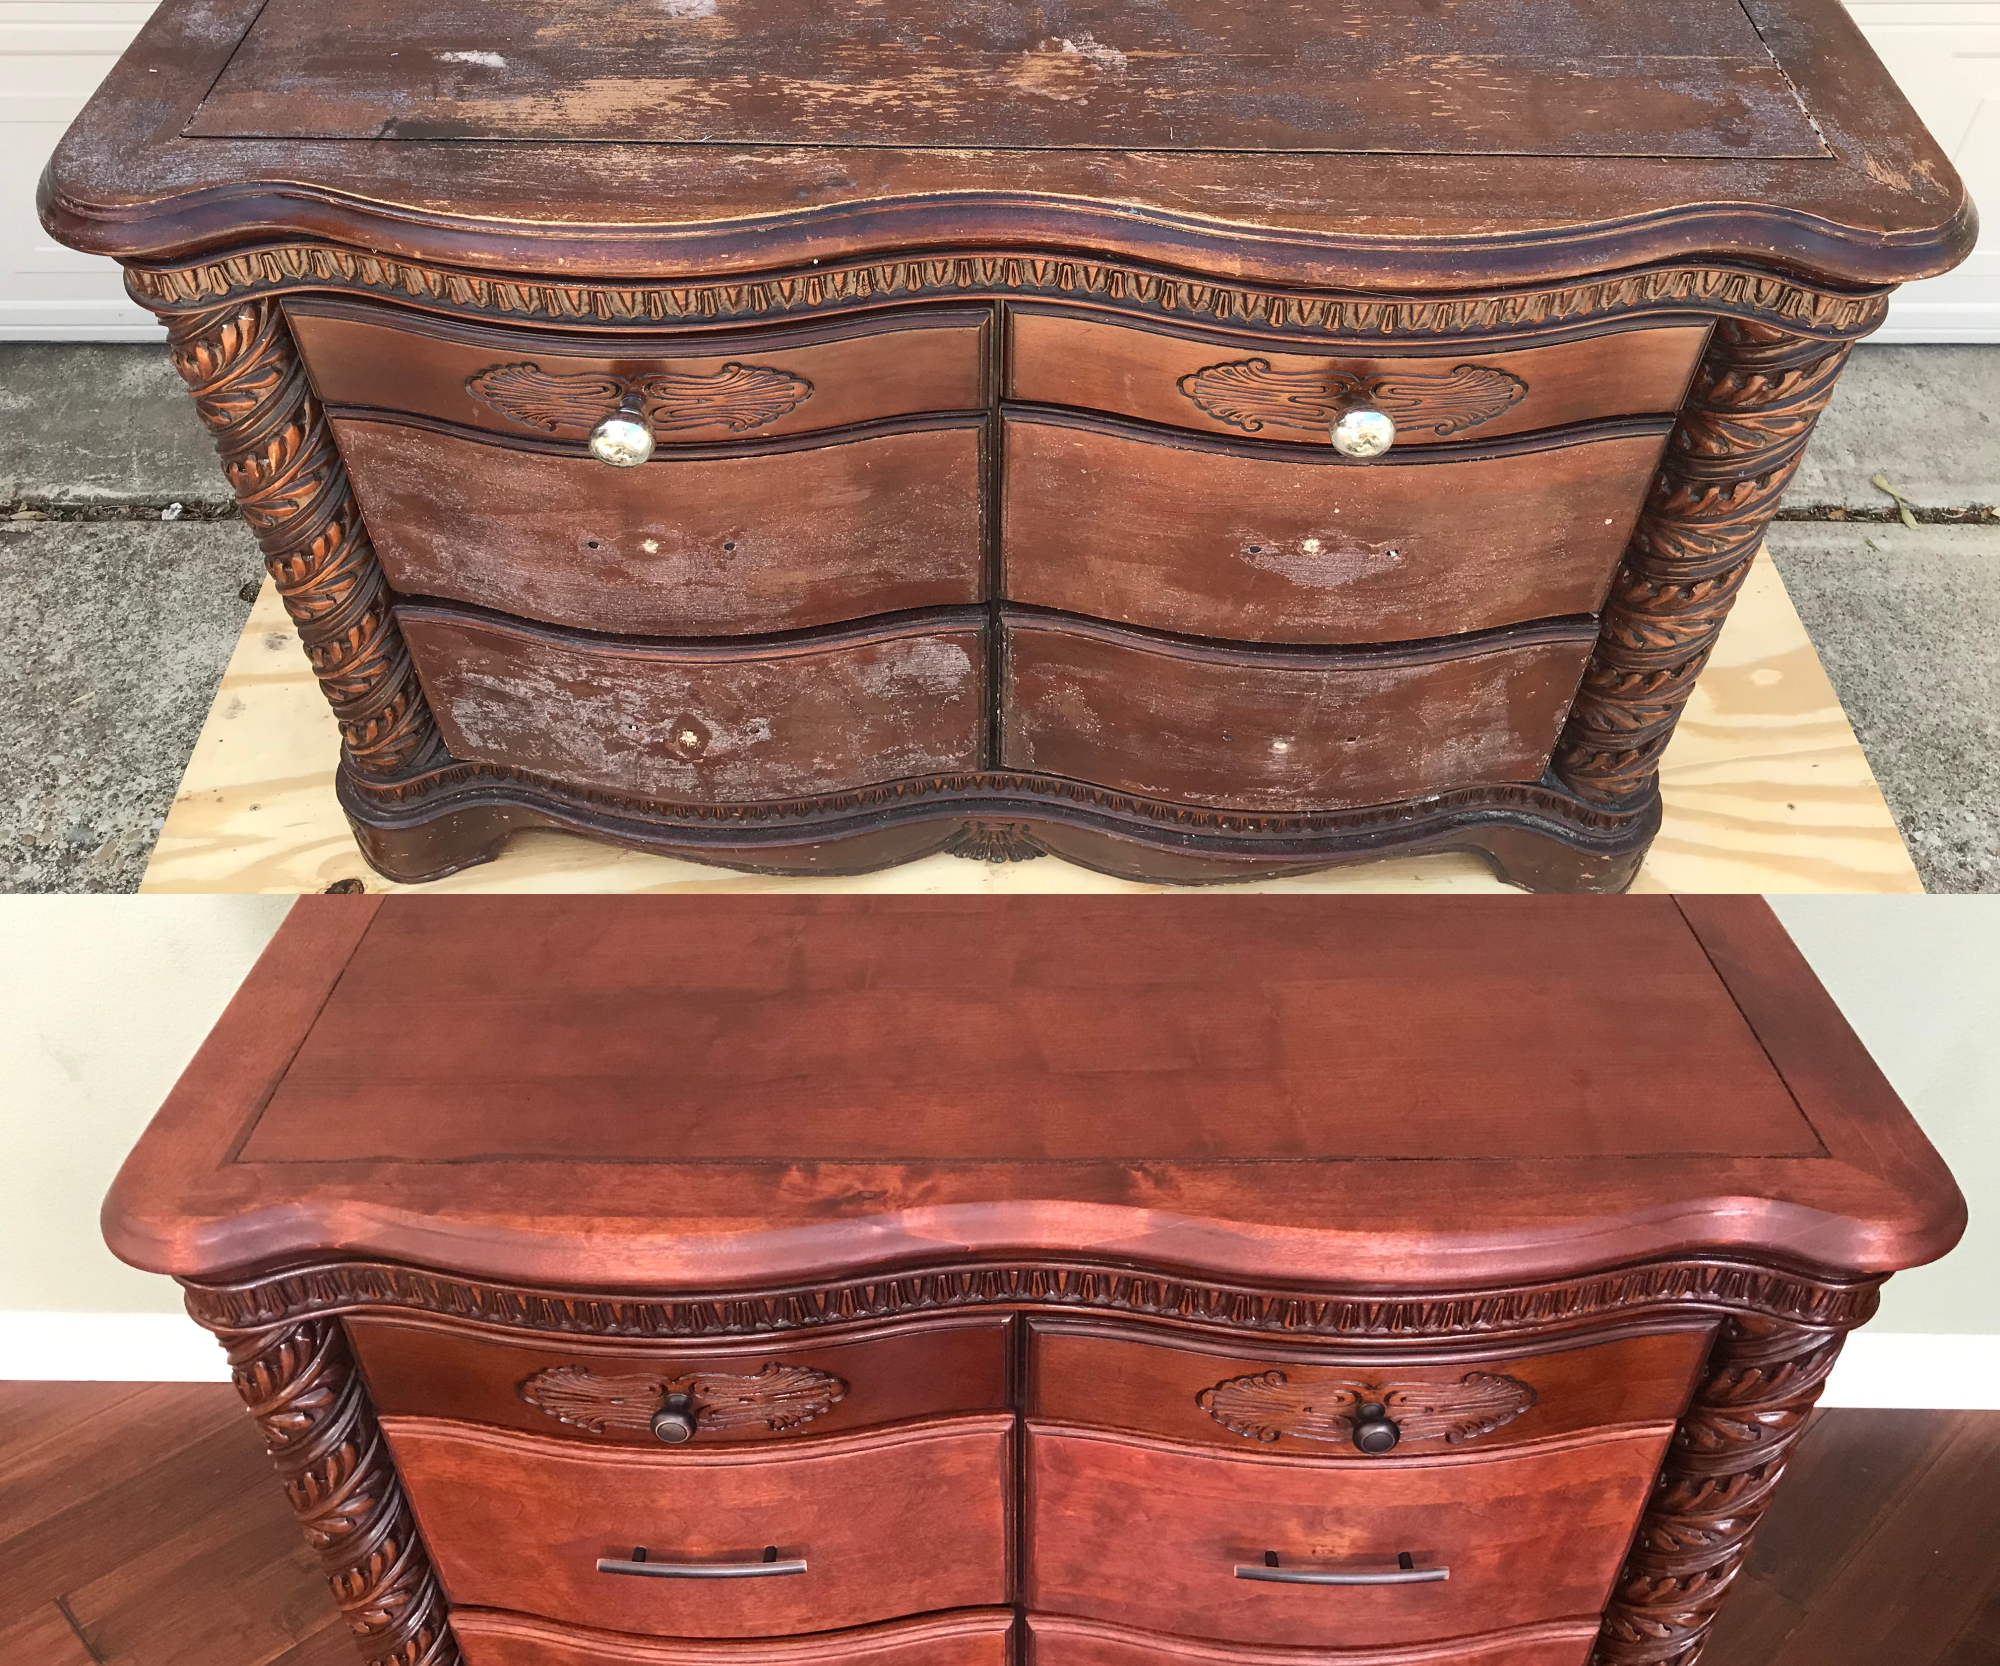 Furniture Restoration: Decoupage Removal and Refinishing